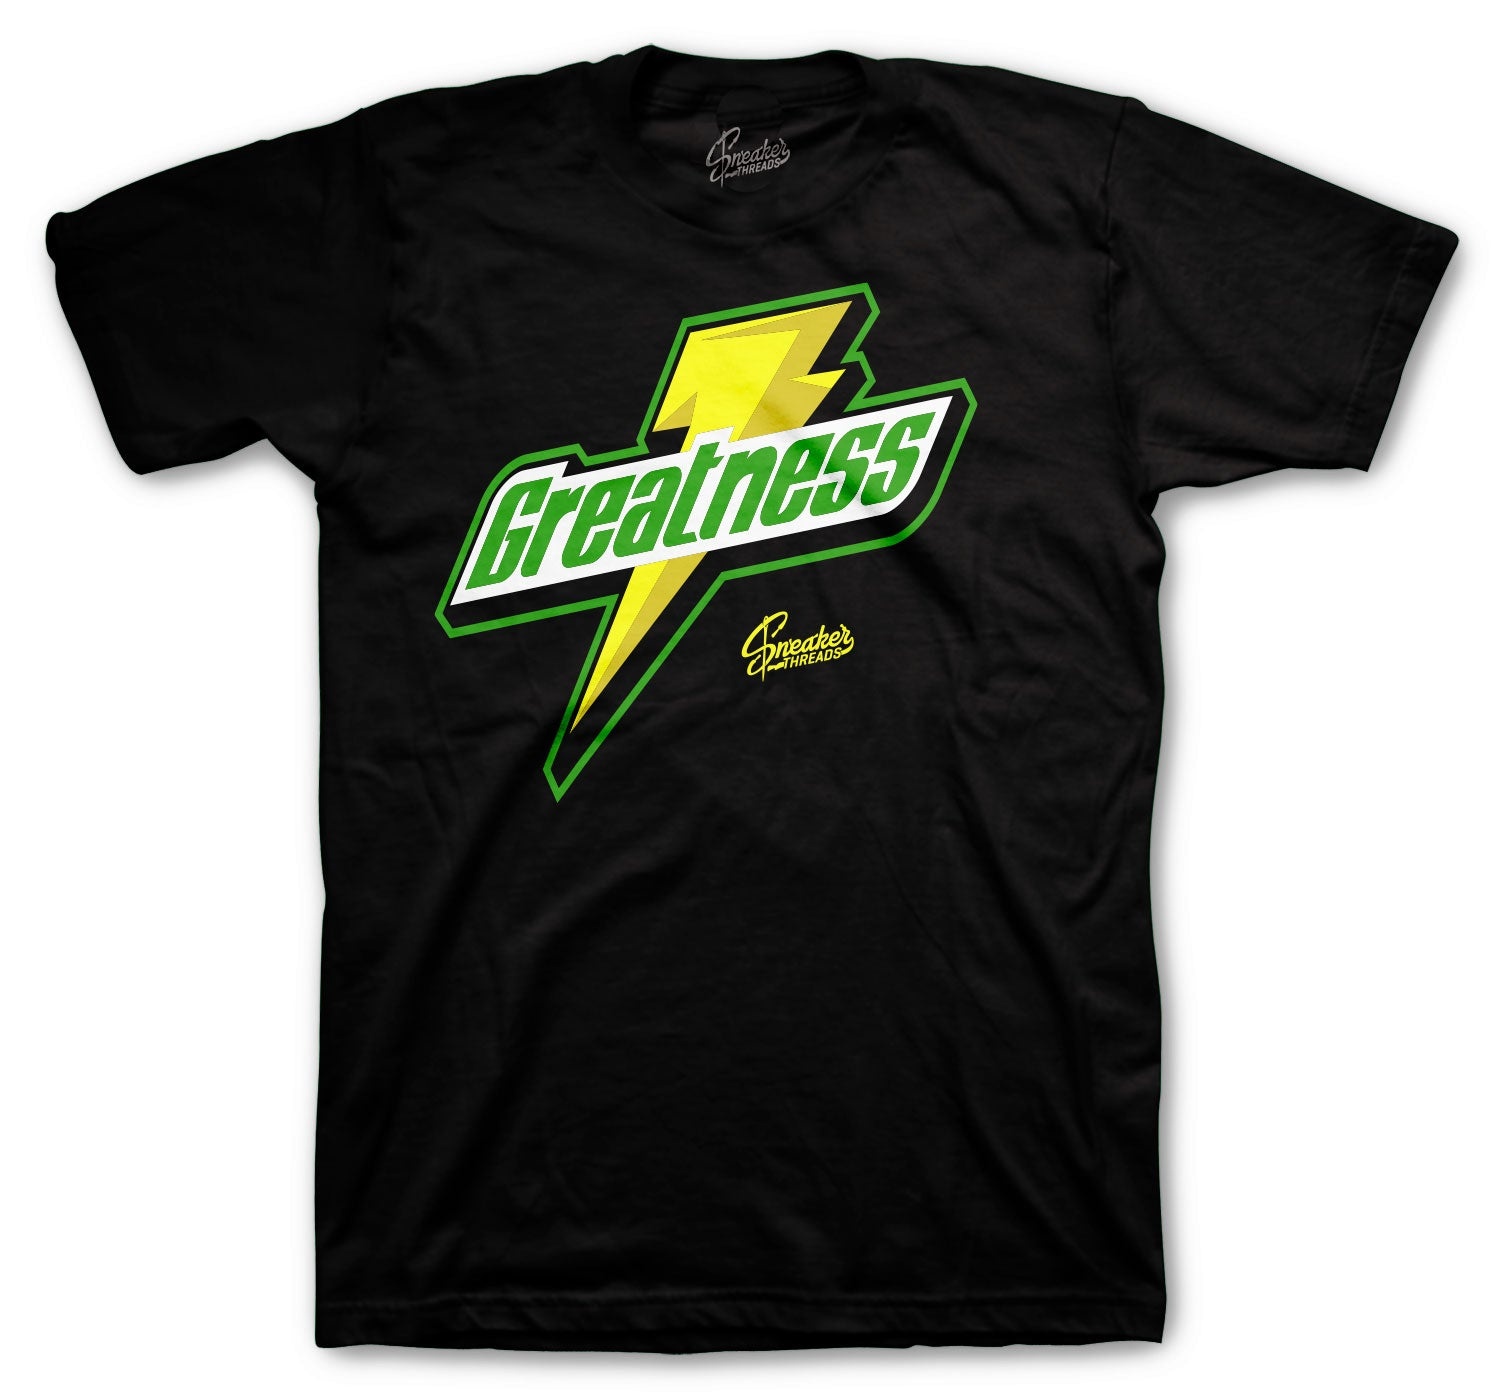 Jordan 5 Oregon Greatness Shirt